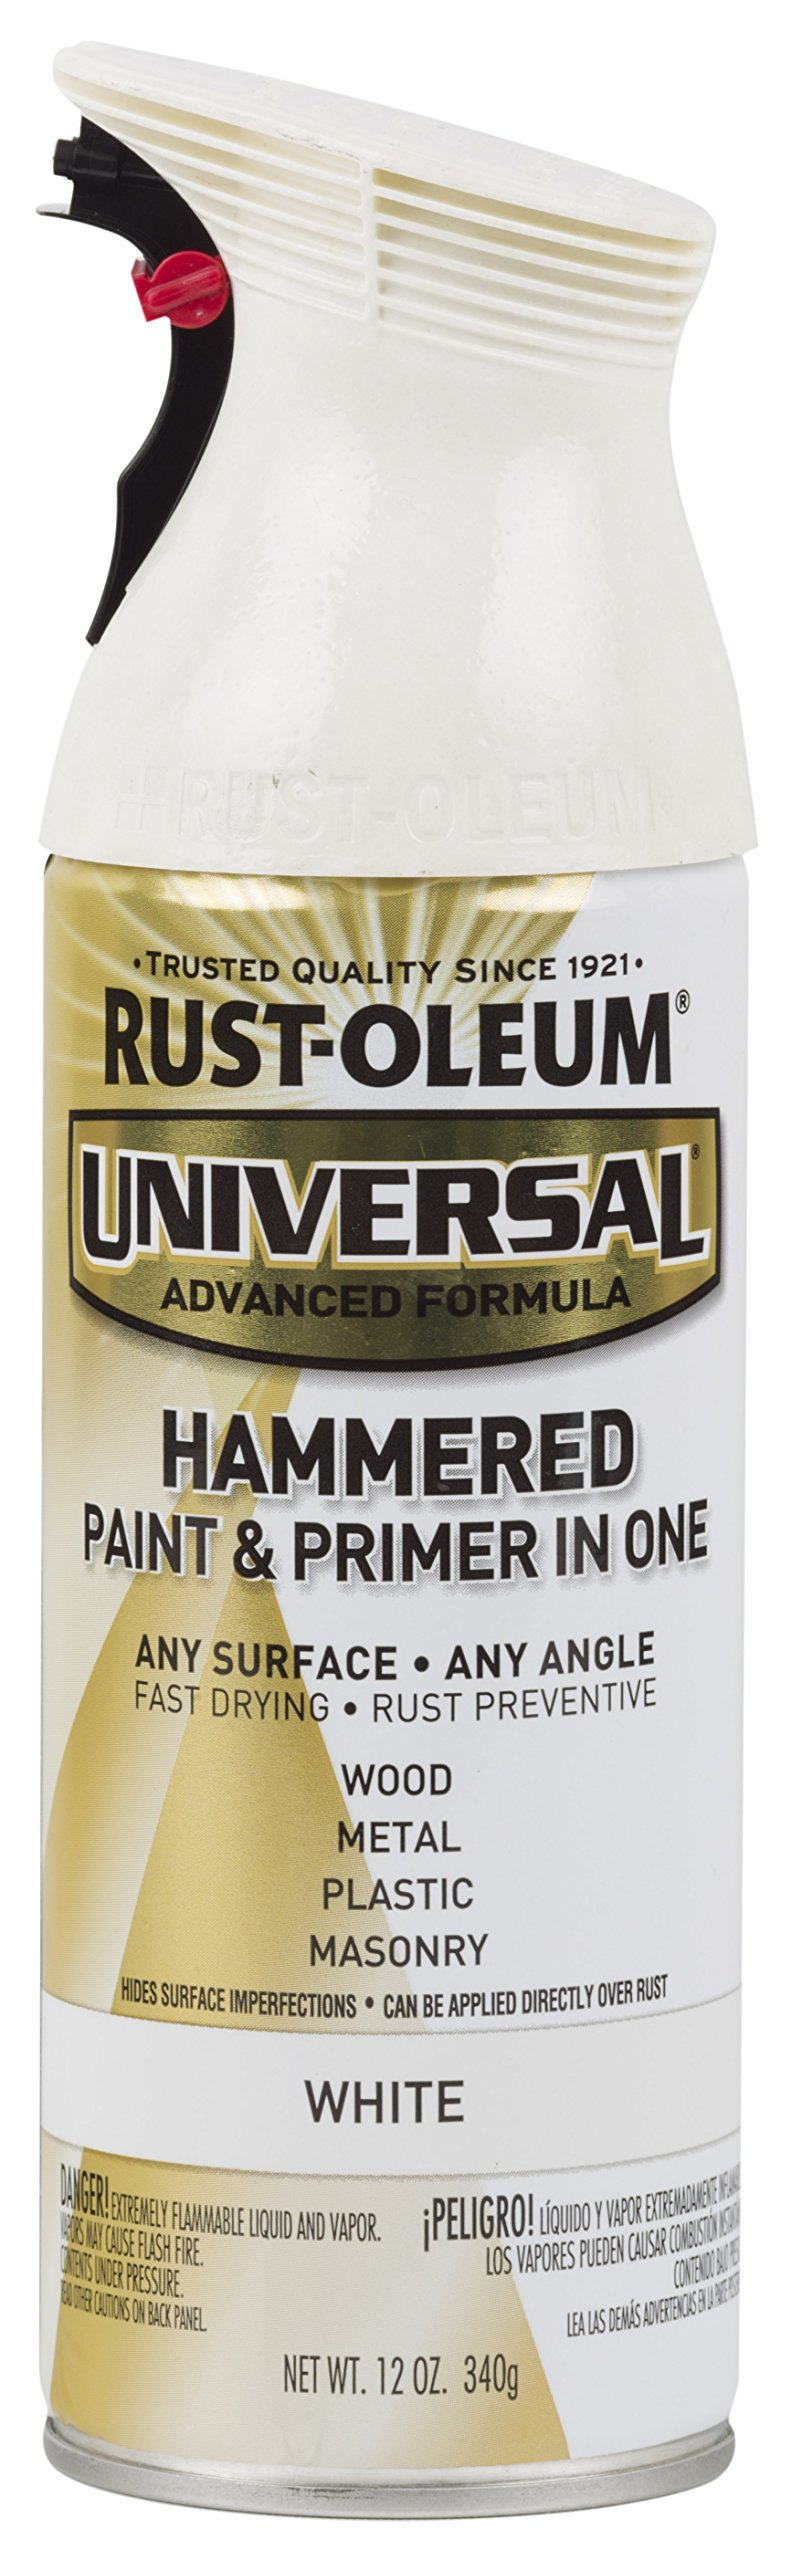 Rust-Oleum 267298-6PK Universal All Surface Spray Paint, 6 Pack, Hammered White